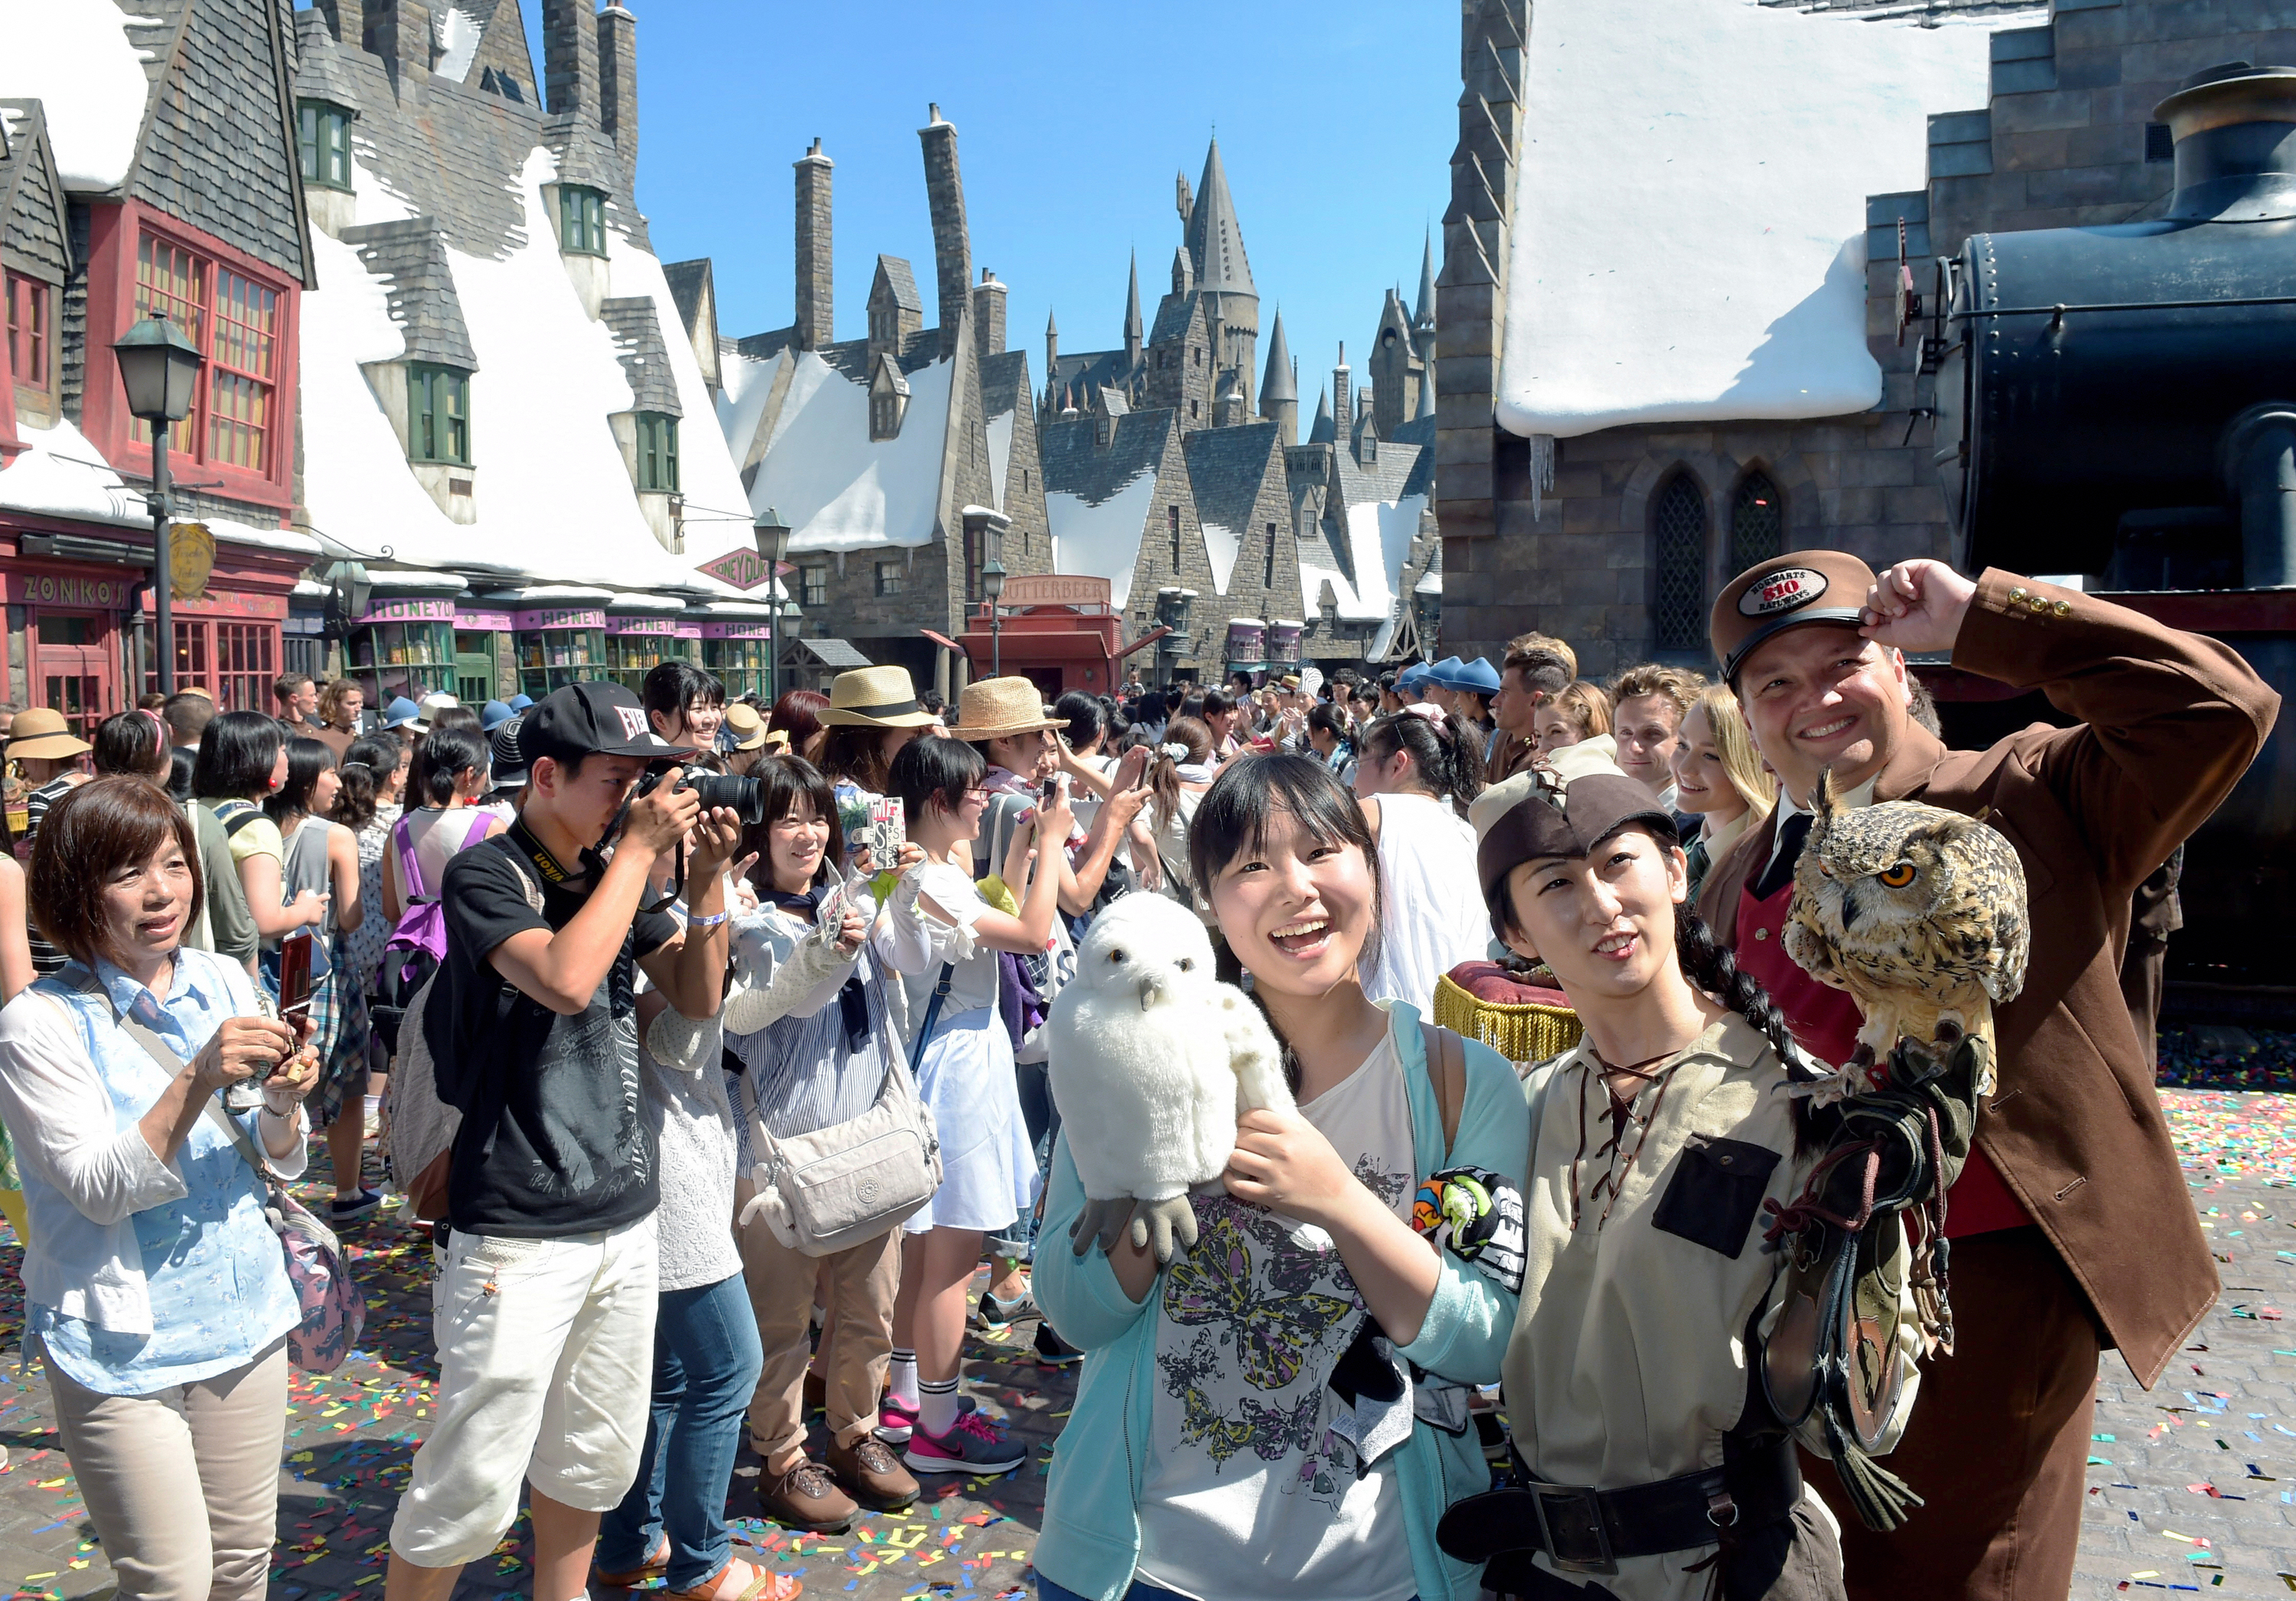 Get Lost in the Wizarding World of Harry Potter in Universal Studios Japan